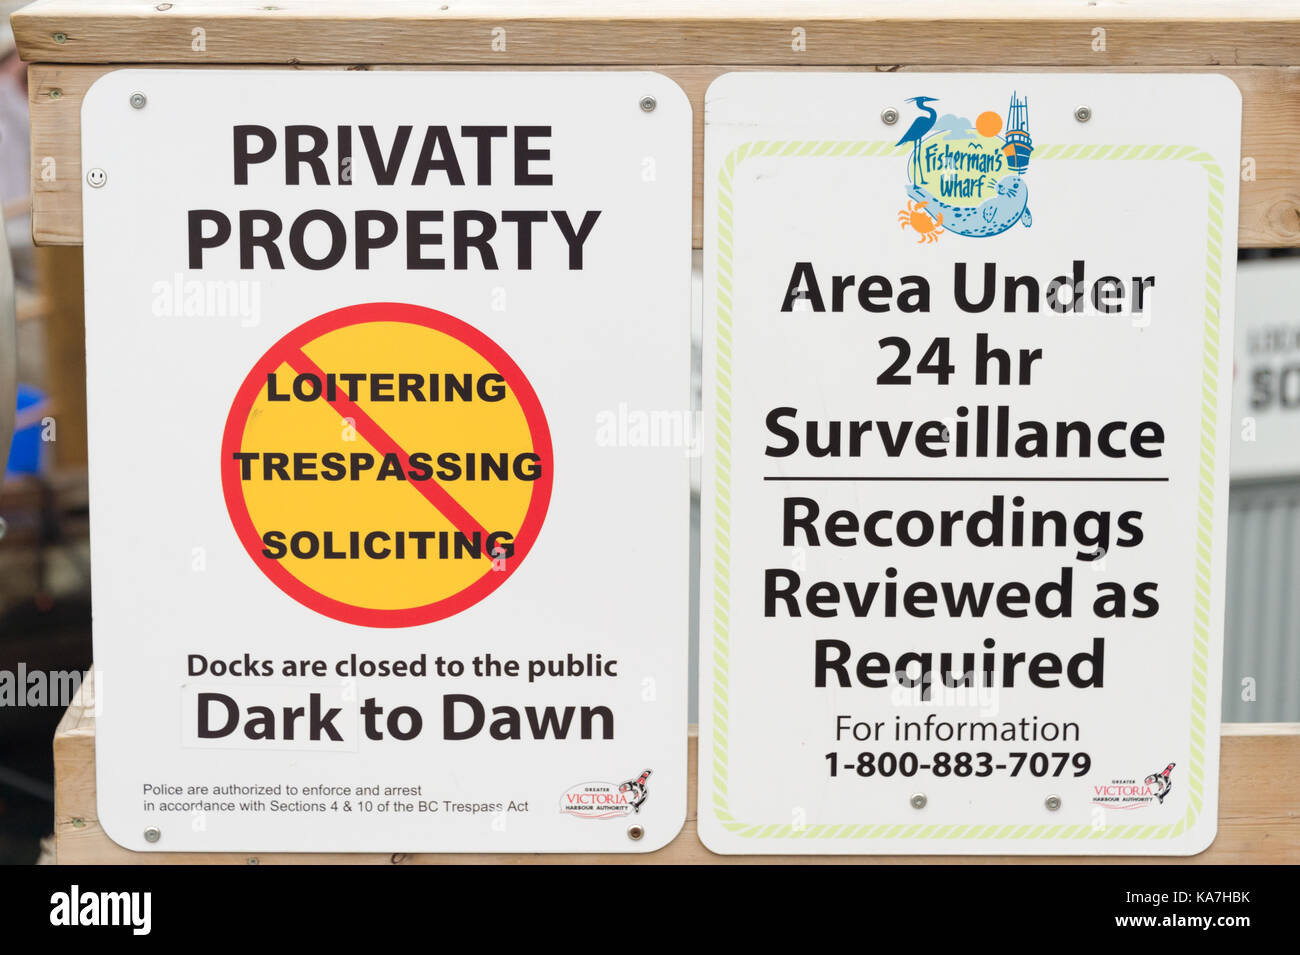 Victoria, British Columbia, Canada - 6 September 2017: Private Property and Neighbourhood Watch Area signs - Stock Image